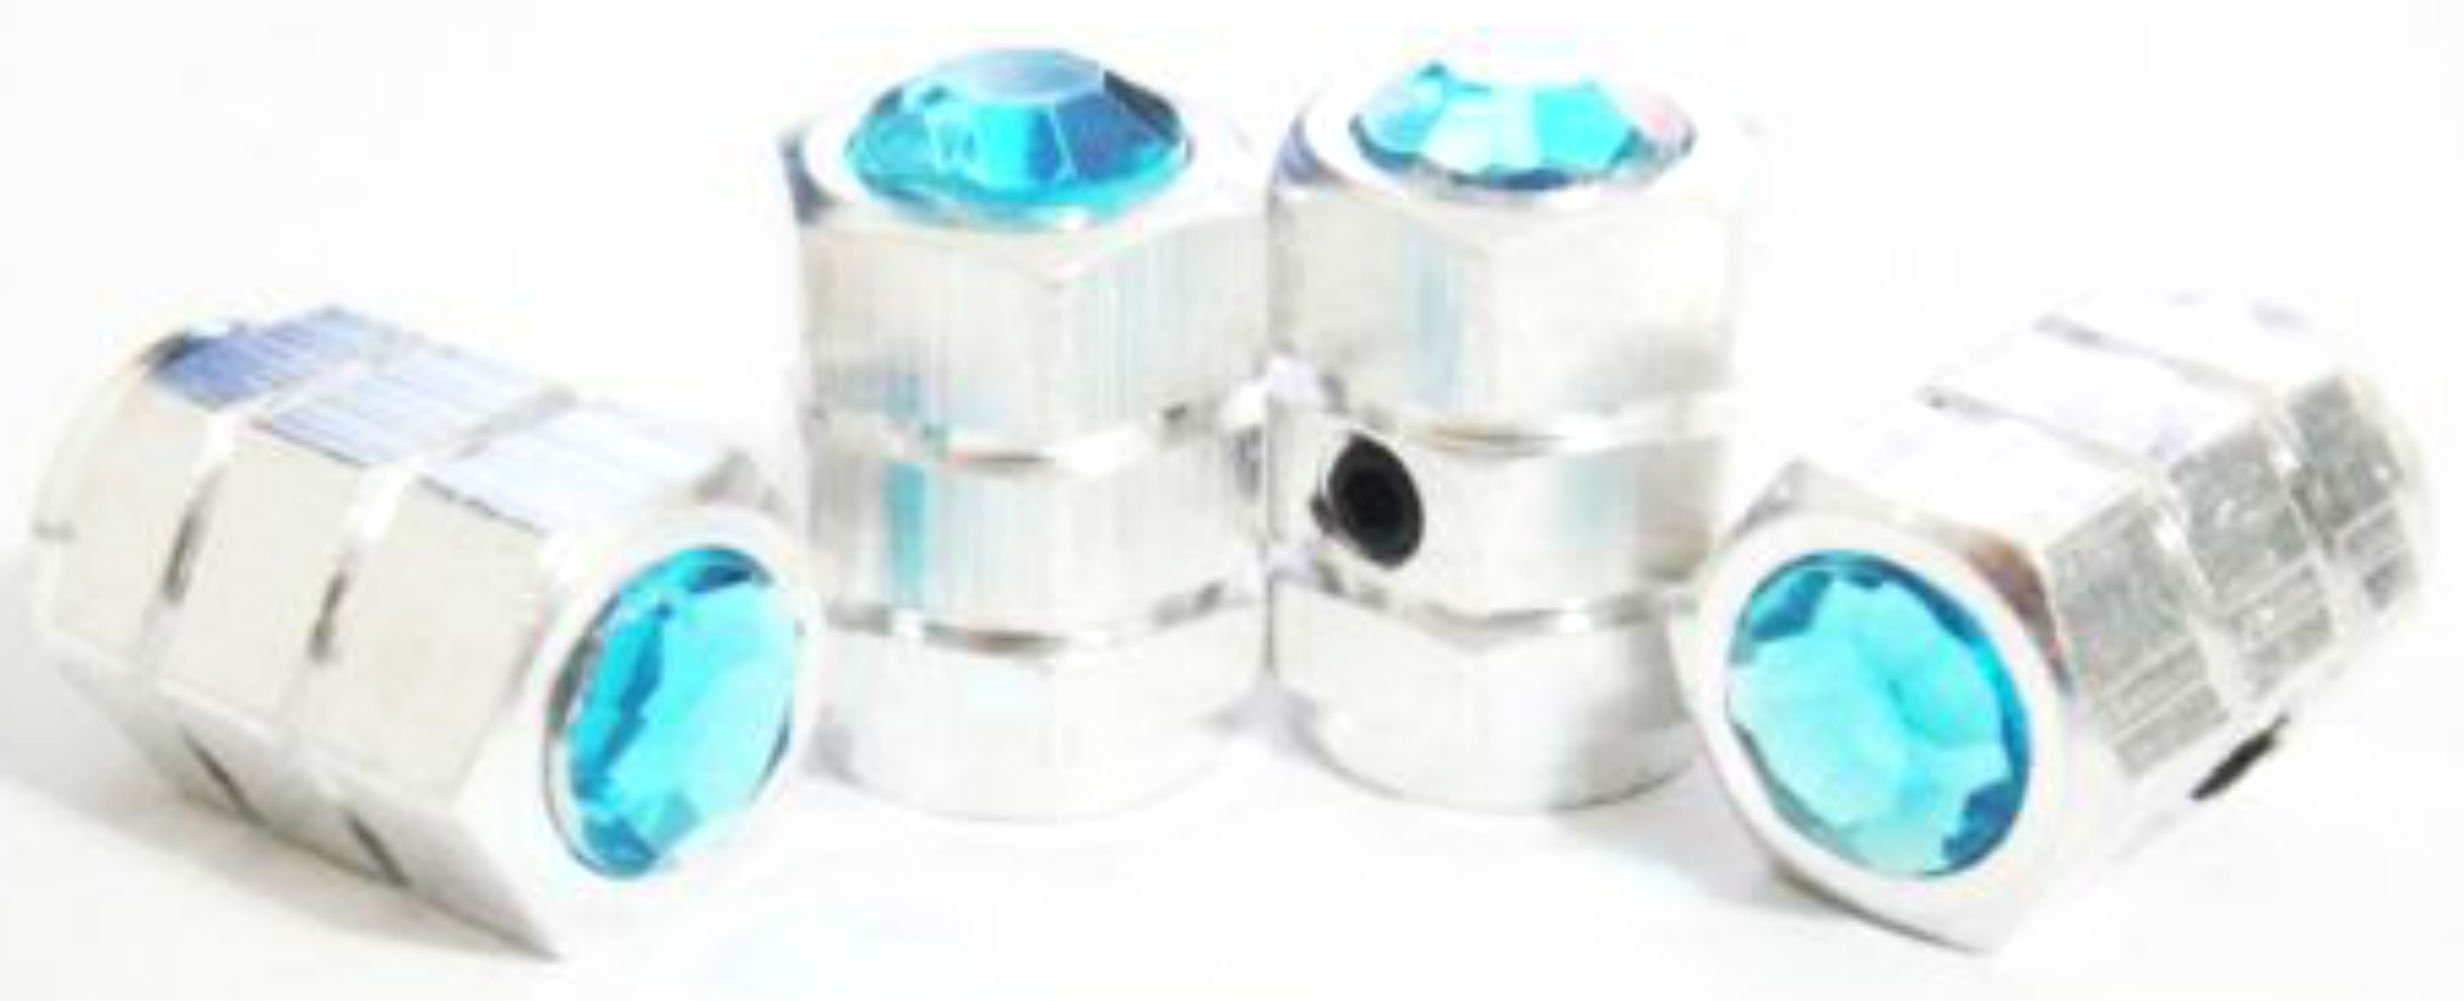 "(4 Count) Cool and Custom ""Hexagon Rhinestone Top with Easy Grip Shape"" Tire Wheel Rim Air Valve Stem Dust Cap Seal Made of Genuine Anodized Chrome Metal {Silver & Blue Colors} ''Anti Theft Locking''"